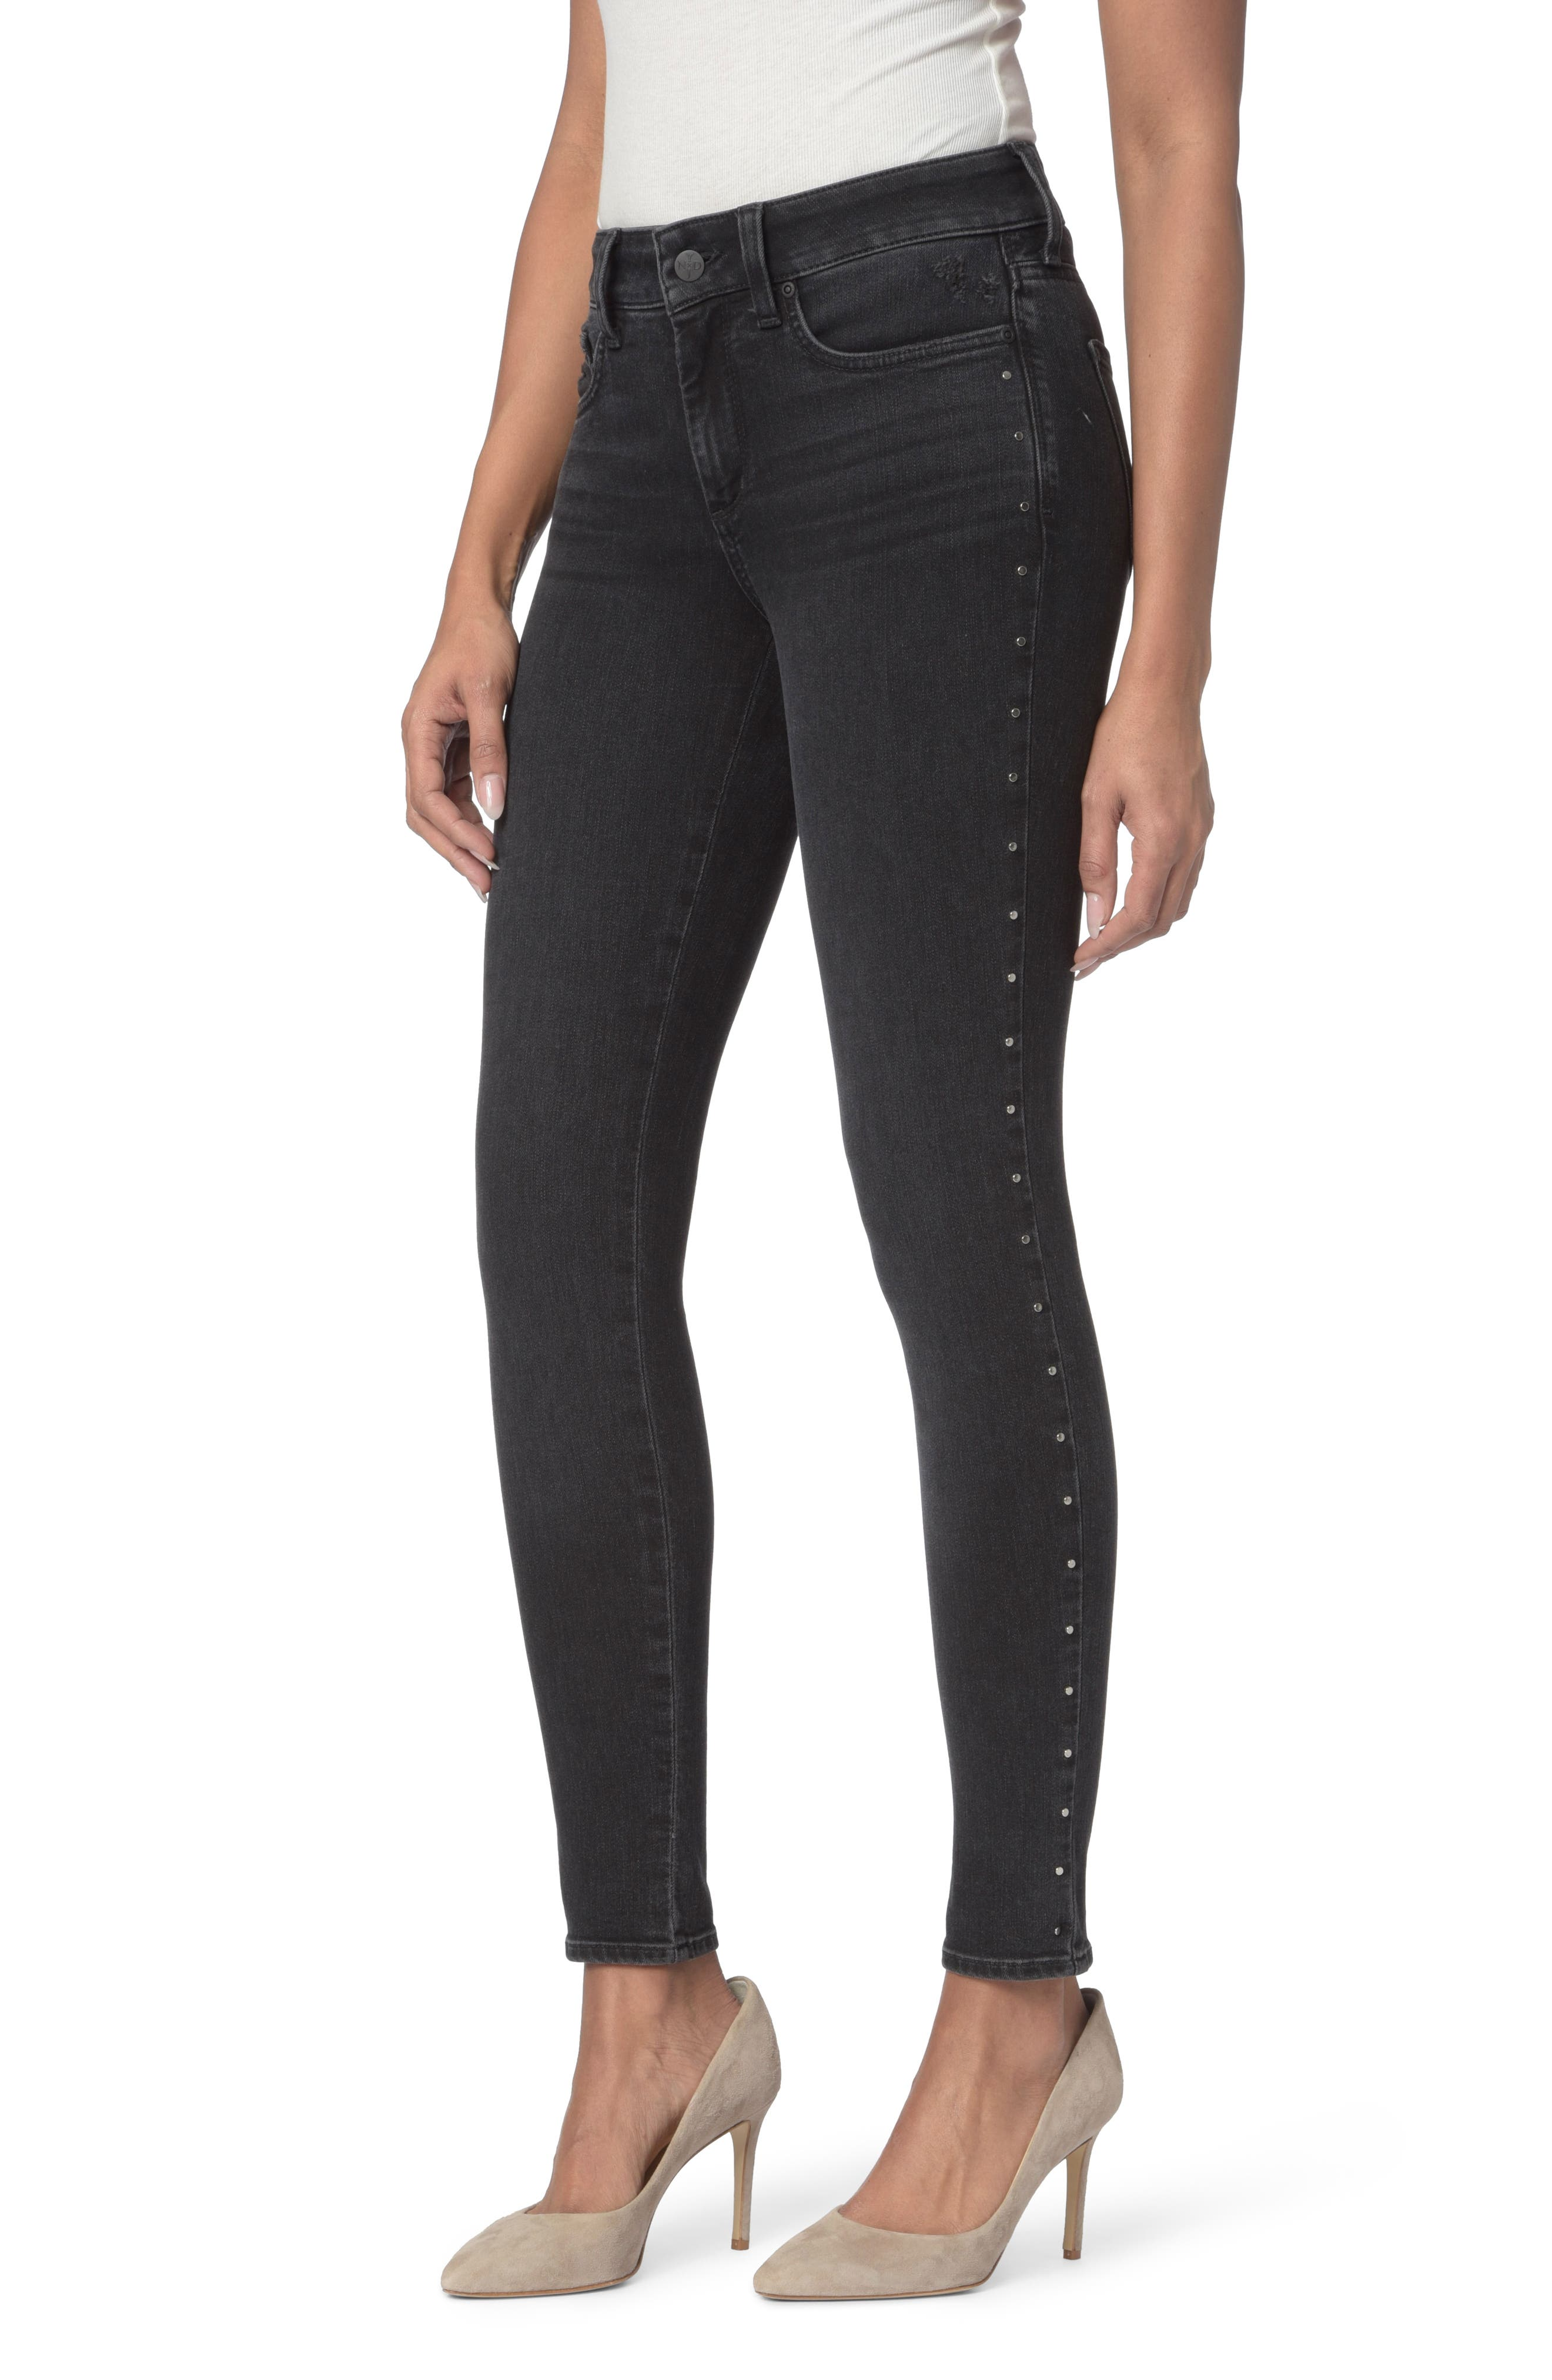 Ami Embellished Stretch Skinny Jeans,                         Main,                         color, 001